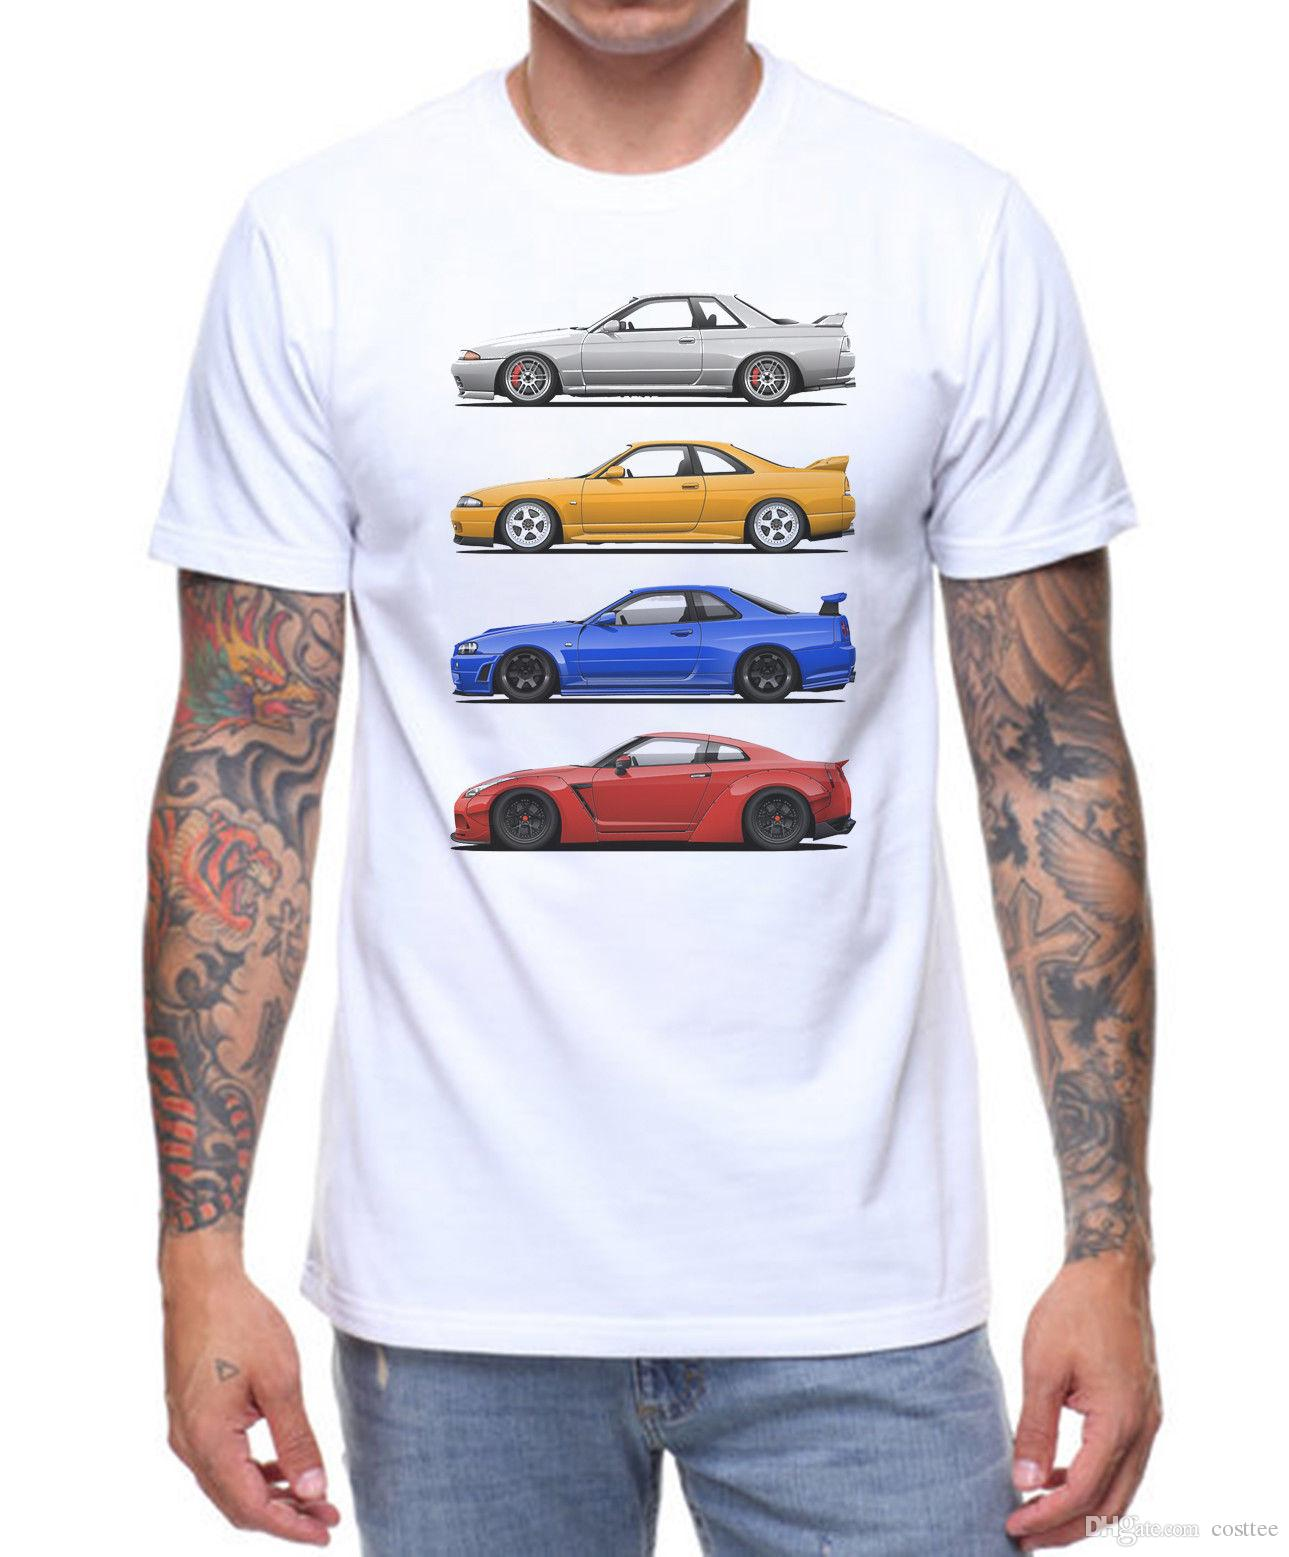 20640e92 NISSAN SKYLINE T SHIRT RETRO VINTAGE CAR ARTWORK BIRTHDAY PRESENT GIFT  Awesome Tee Shirt Funny T Shirts Prints From Costtee, $10.83  DHgate.Com